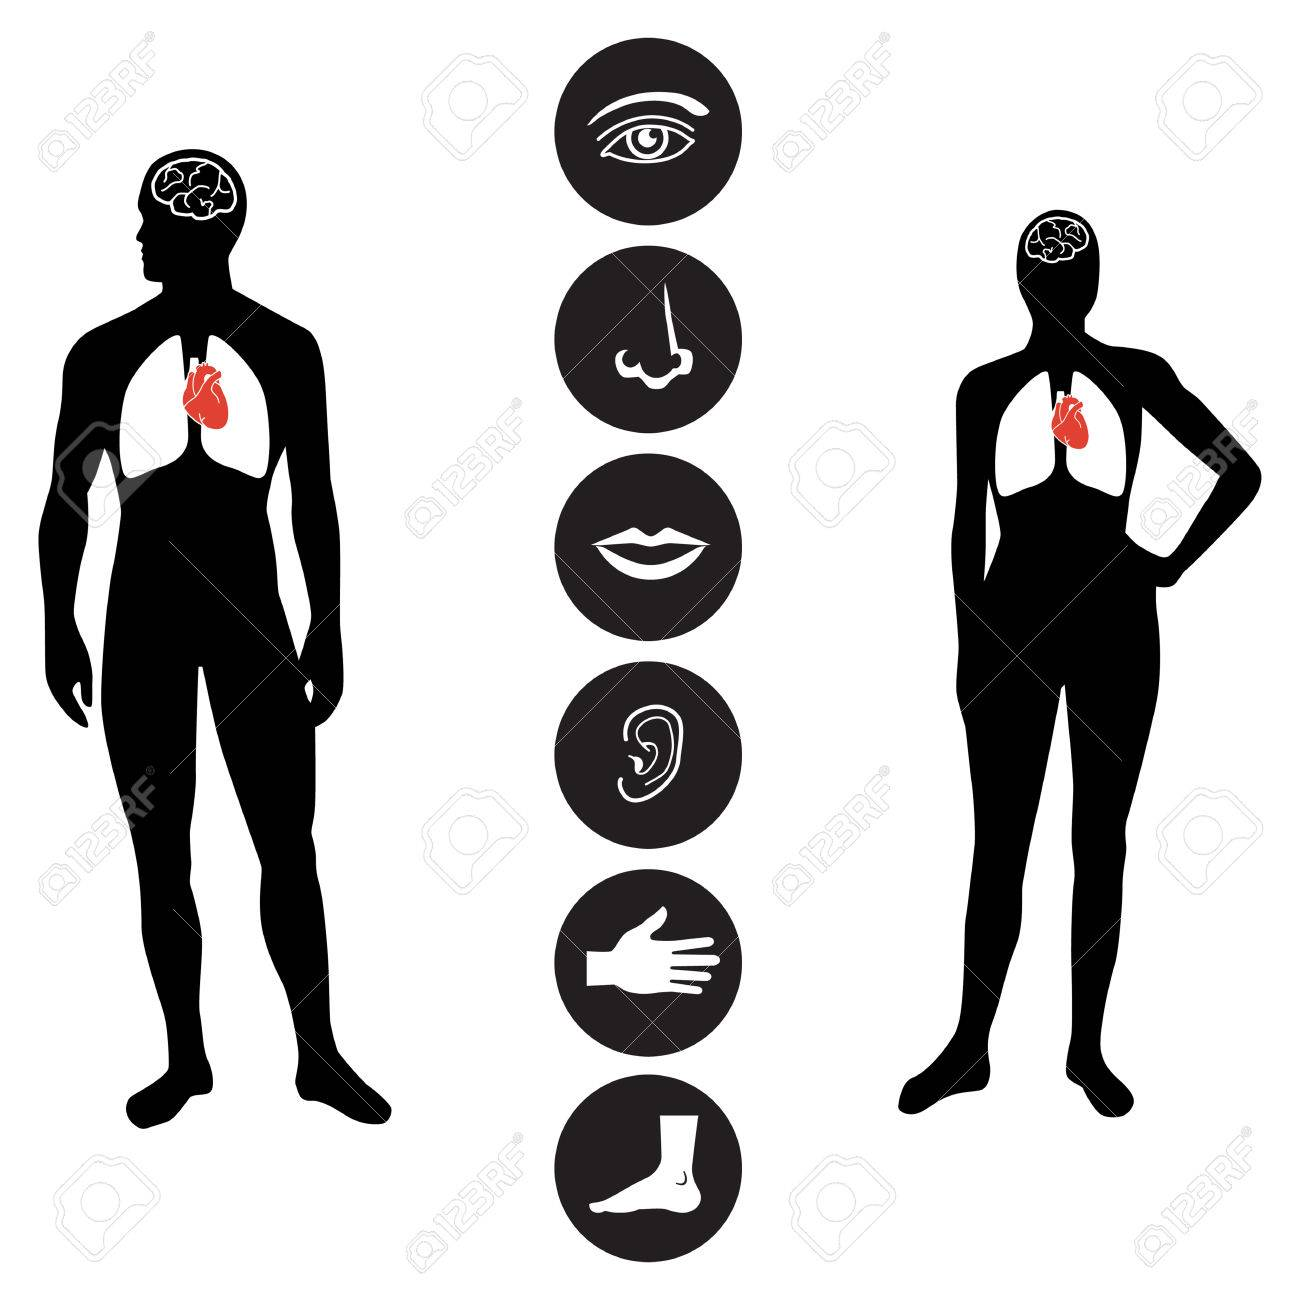 Human Male And Female Body Outline With Icons Of Various Human